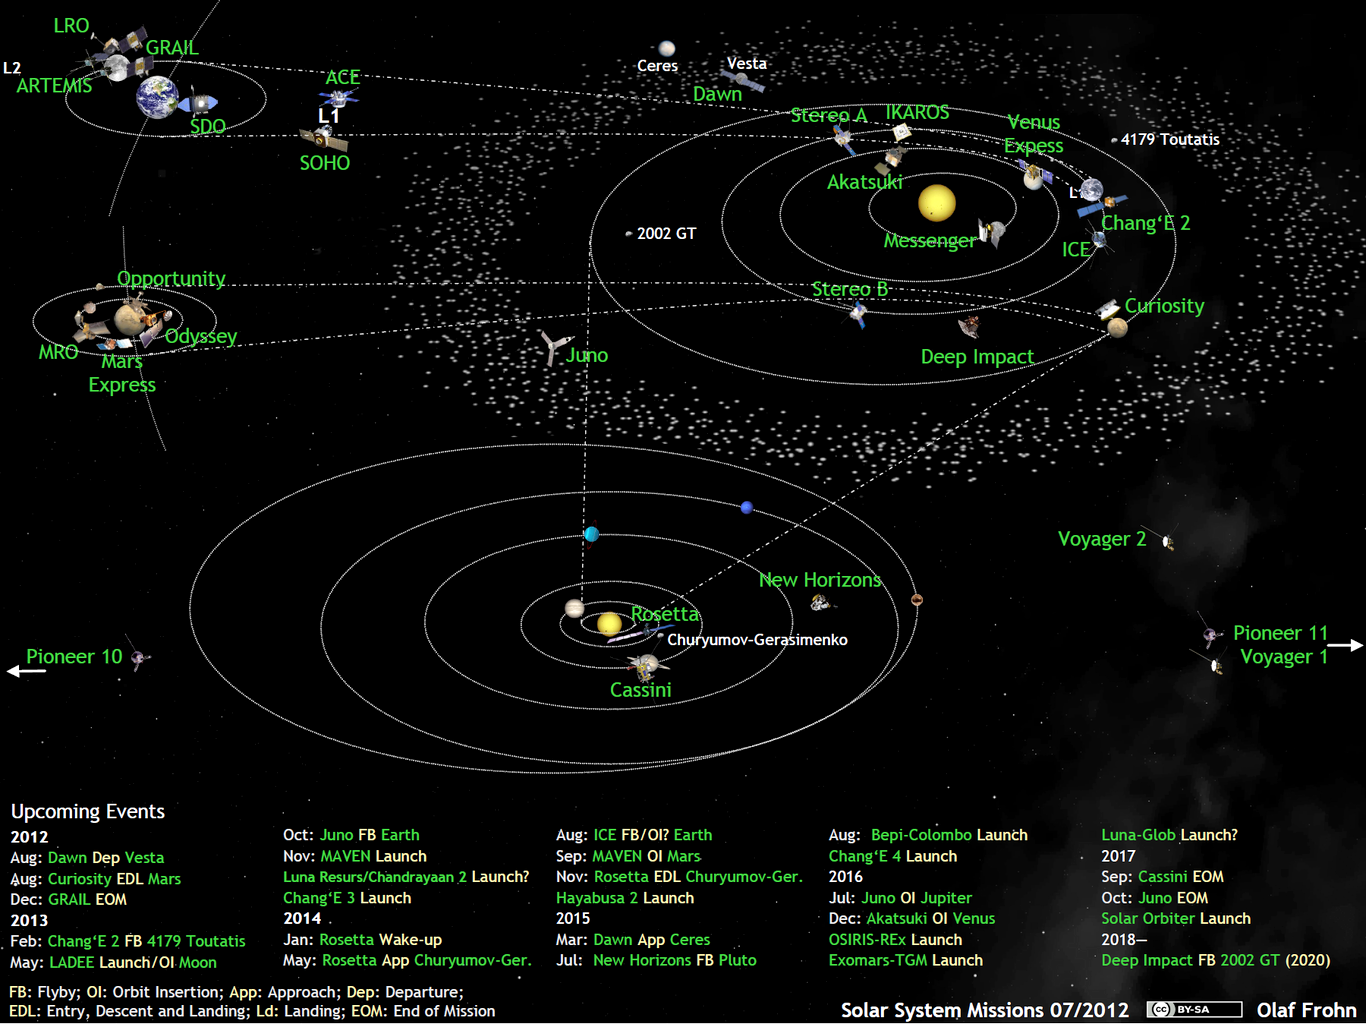 What's Up in the Solar System in July 2012